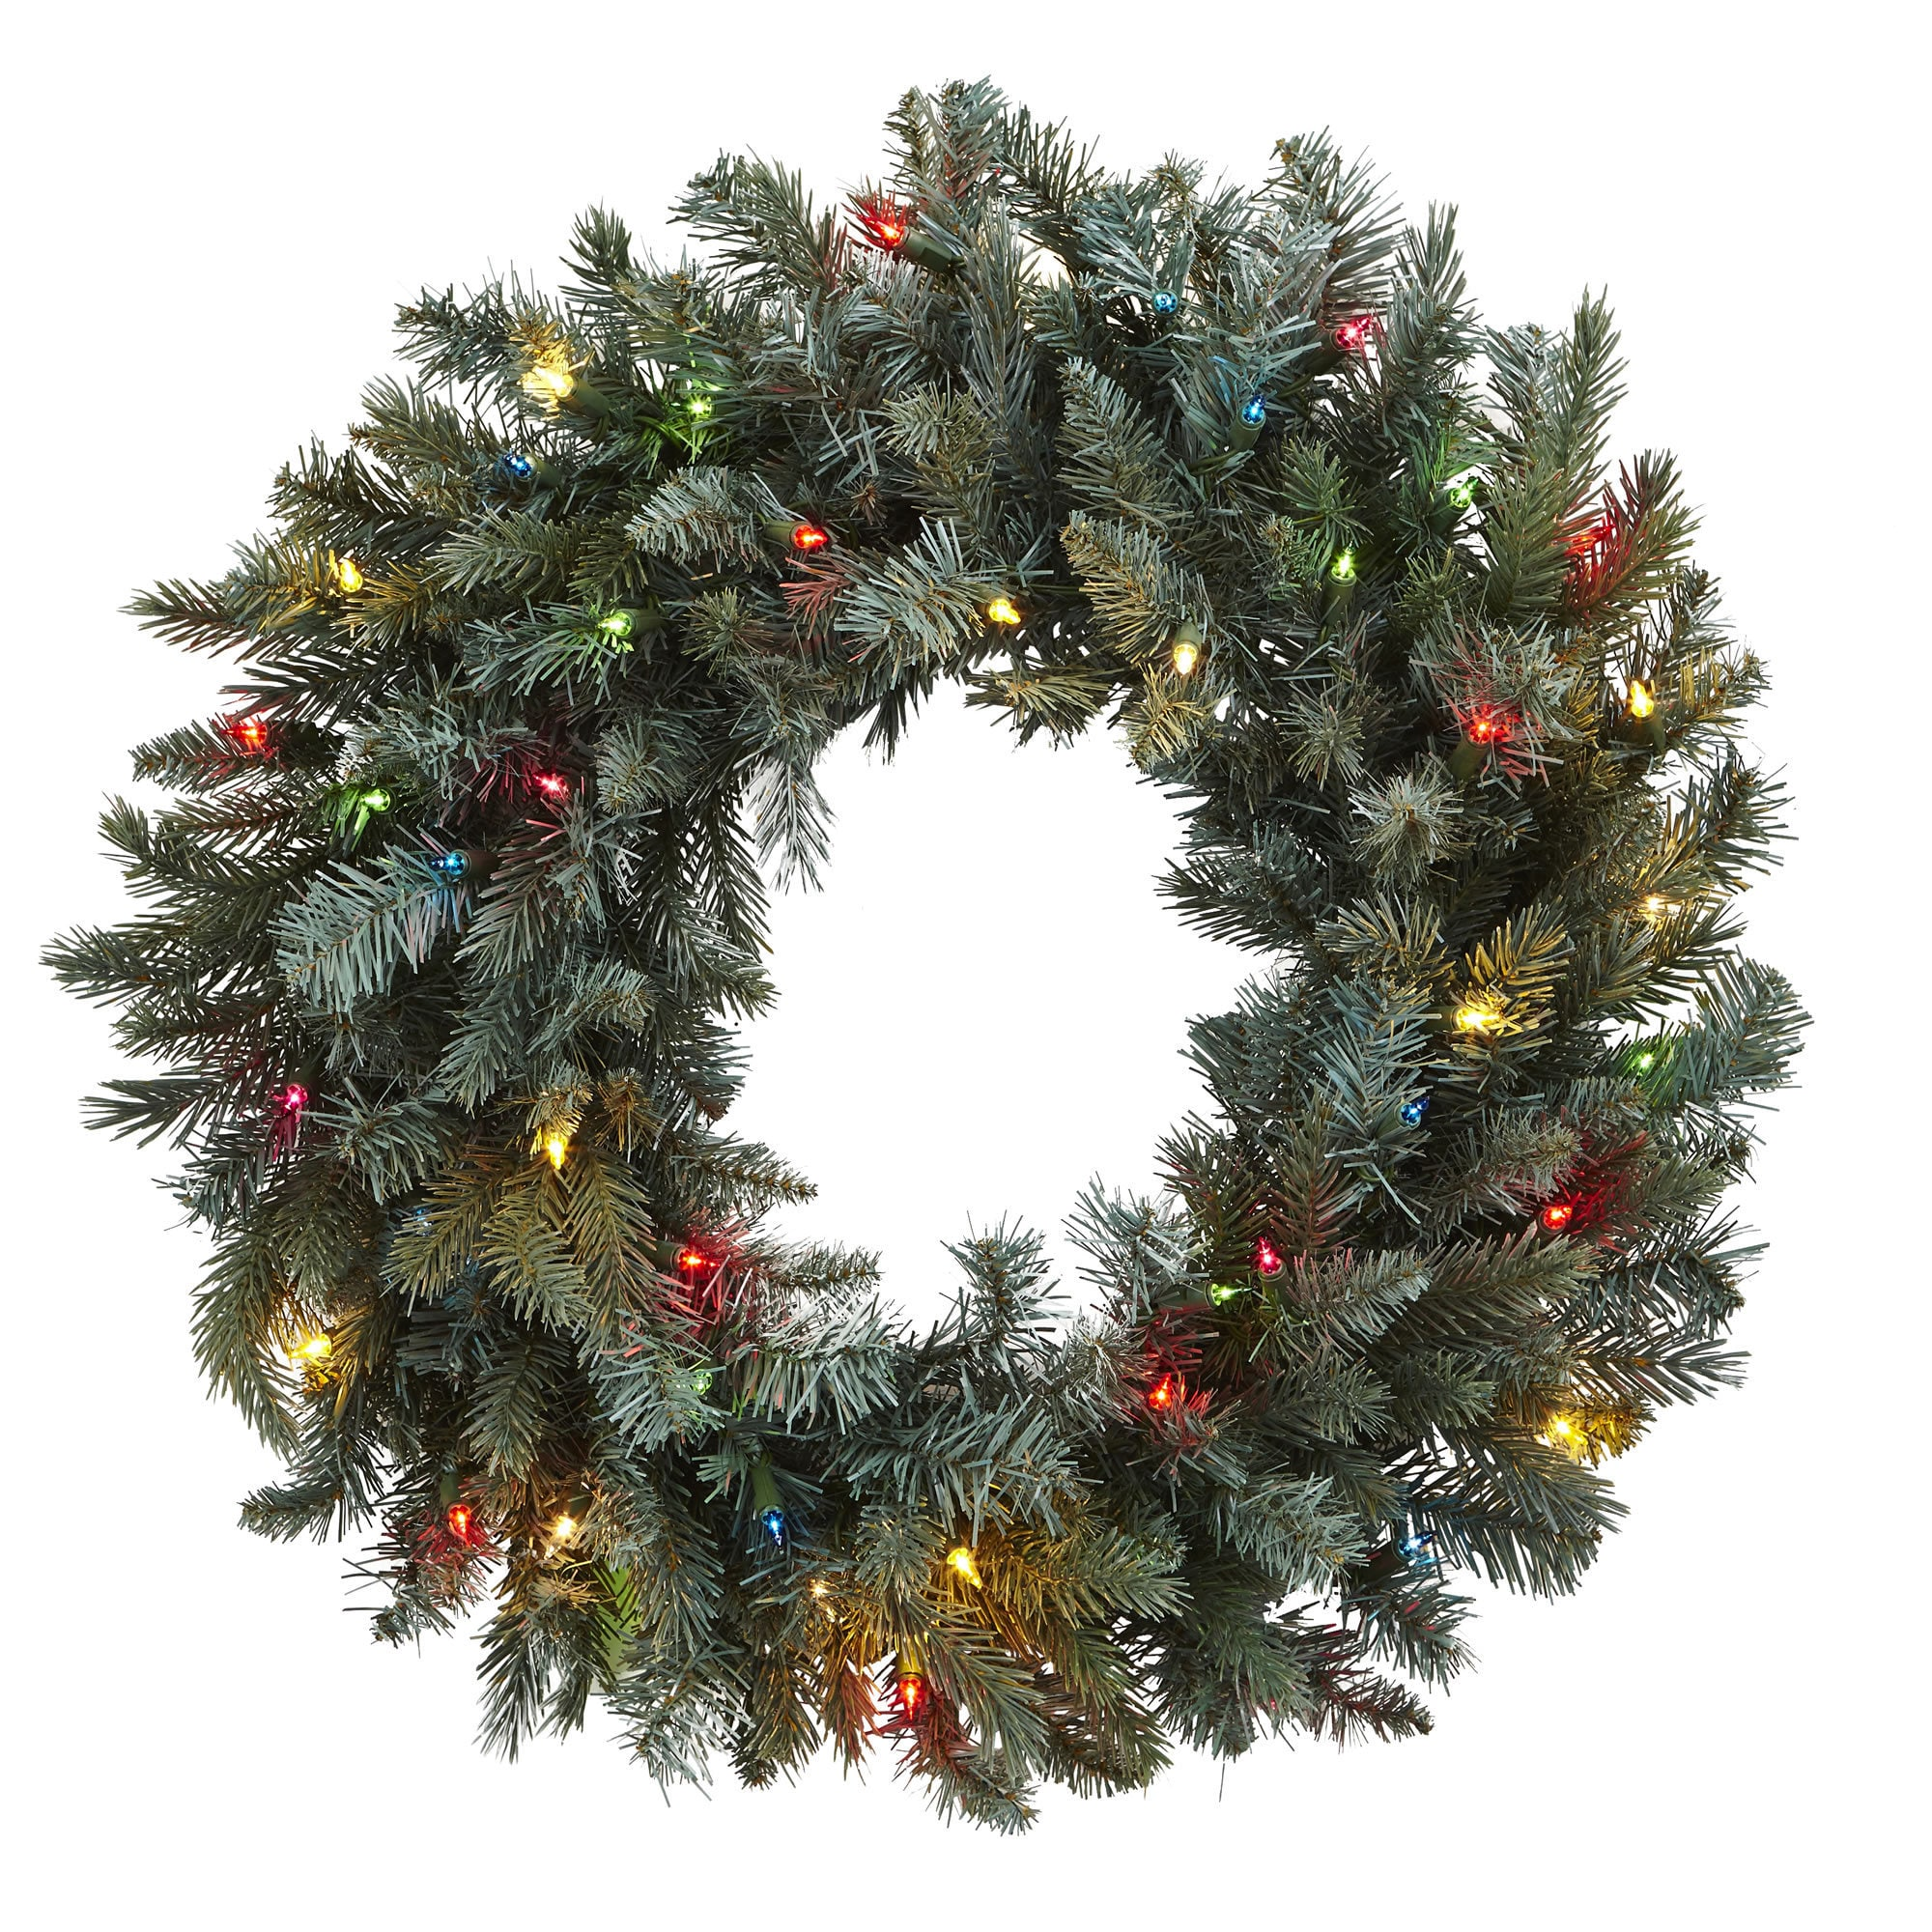 Buy Red Wreaths Online at Overstockcom